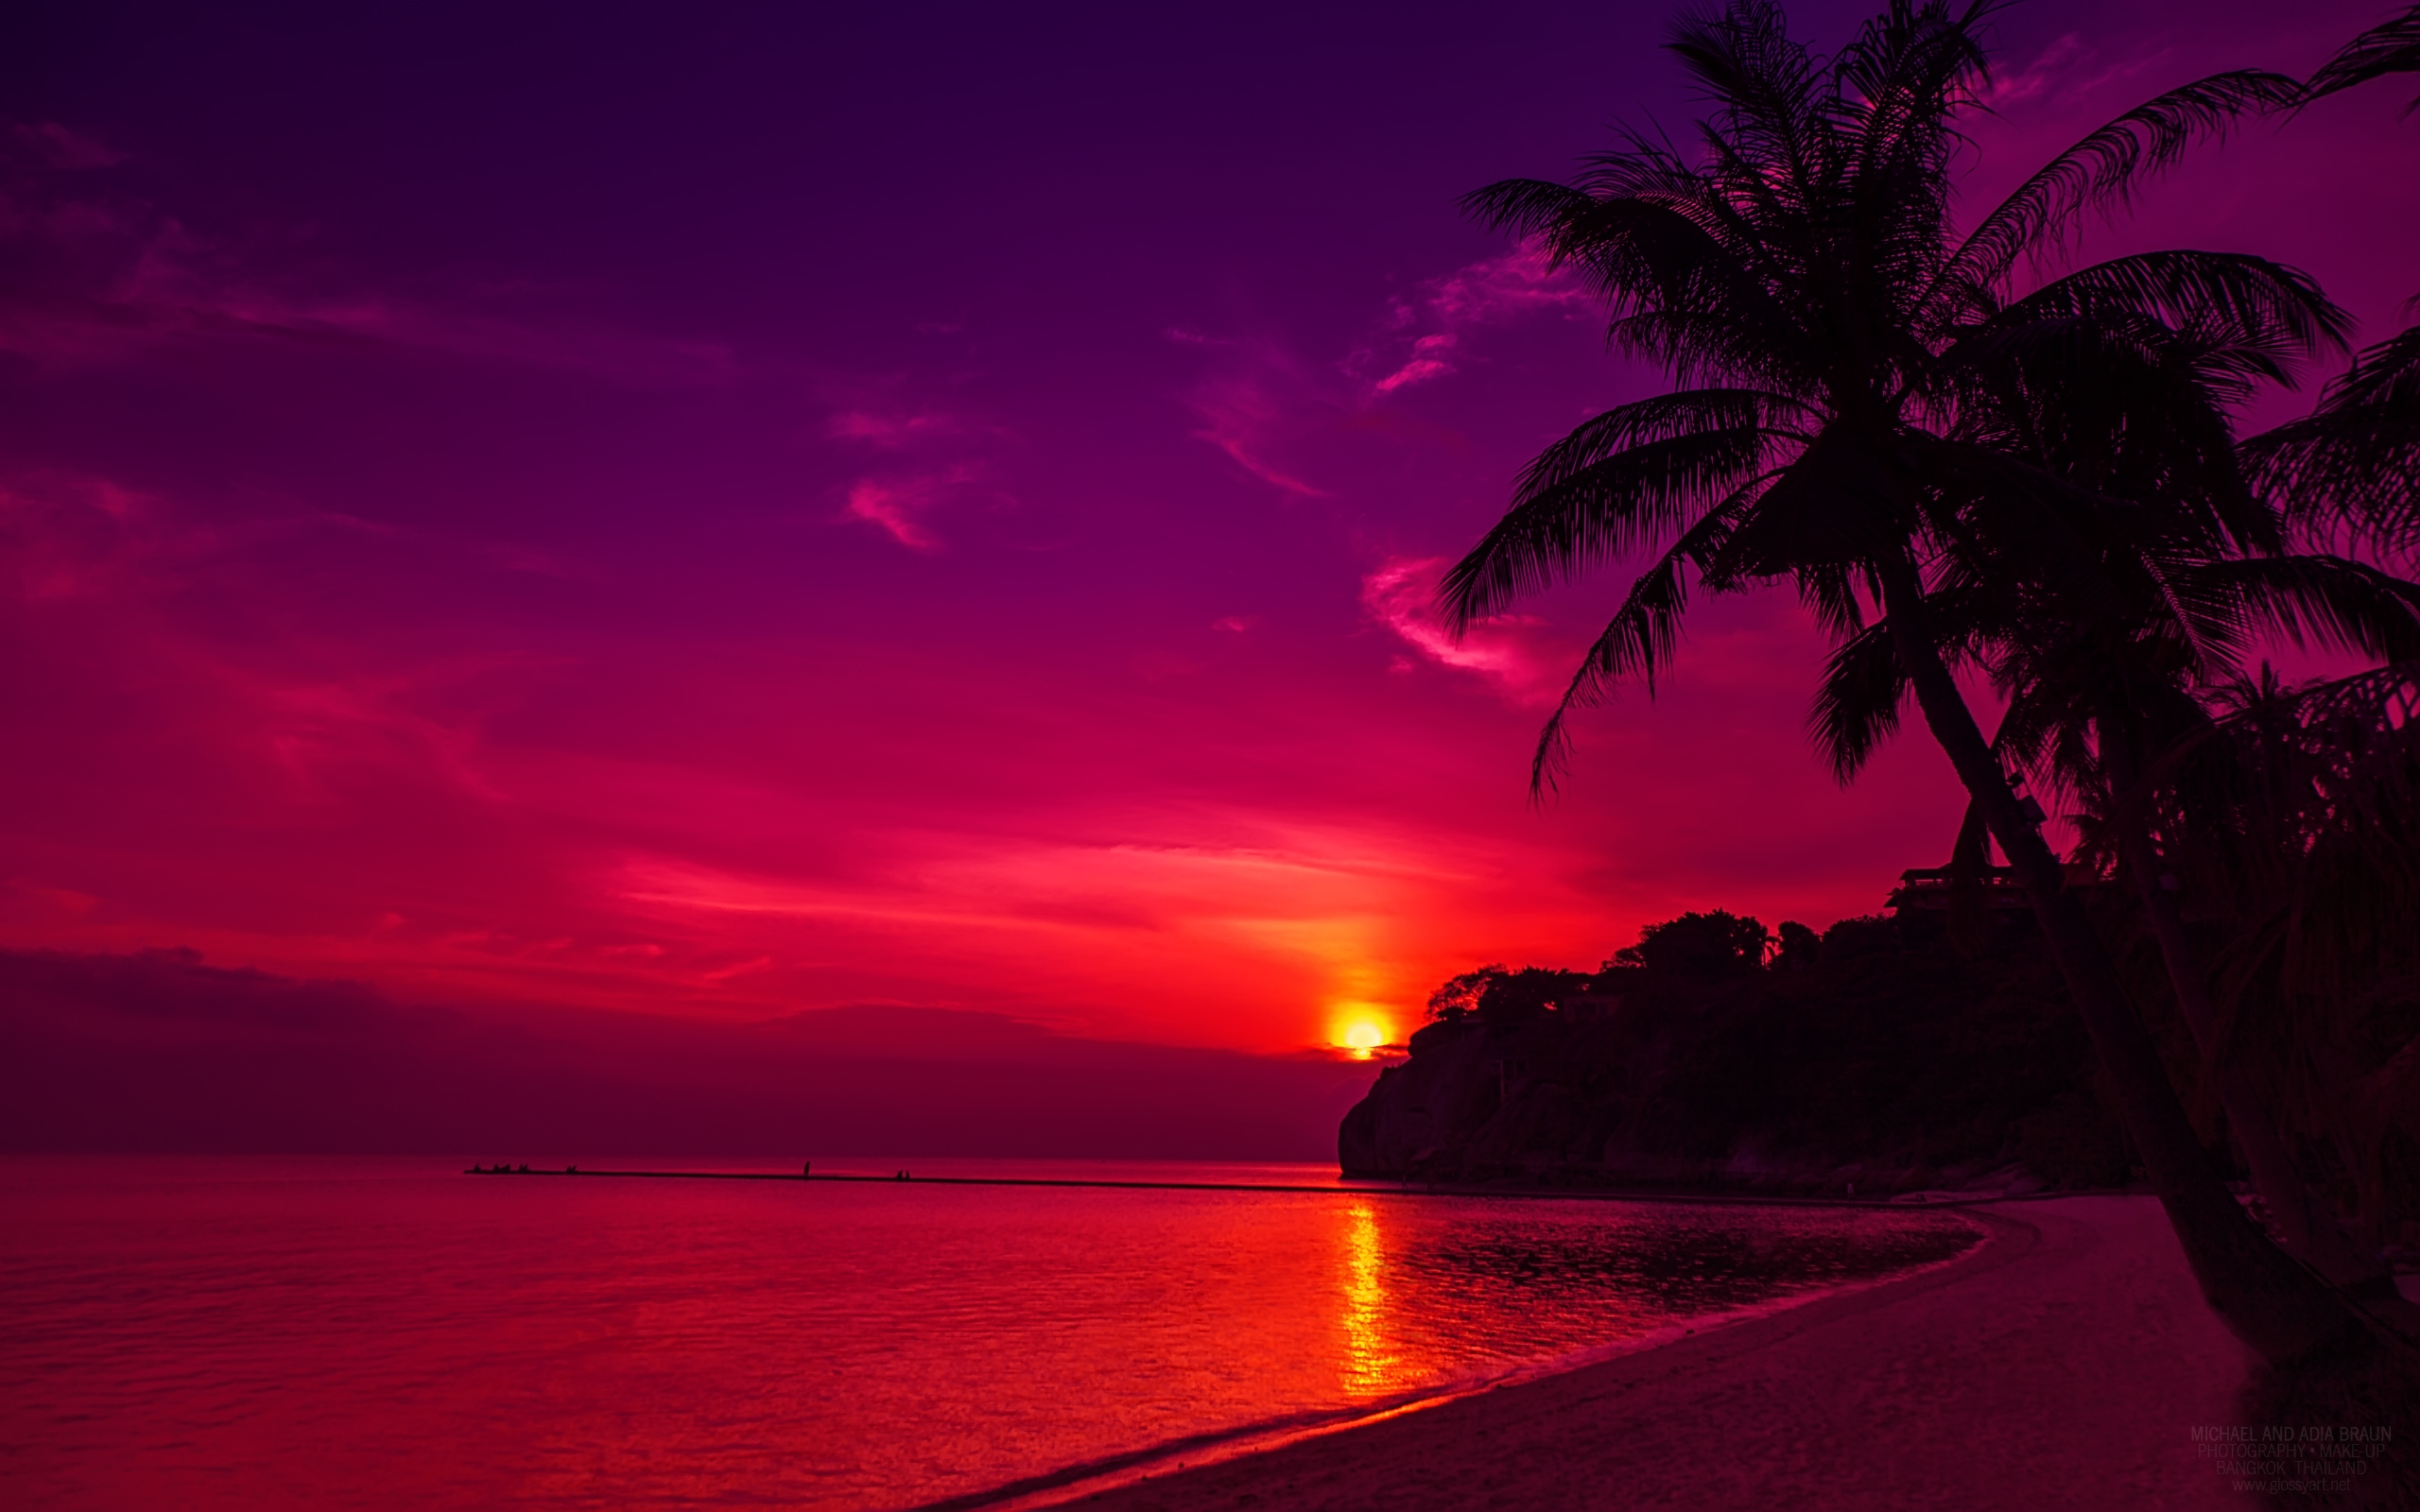 Beautiful Sunset HD Wallpaper Wide Screen Wallpaper 1080p2K4K 2560x1600